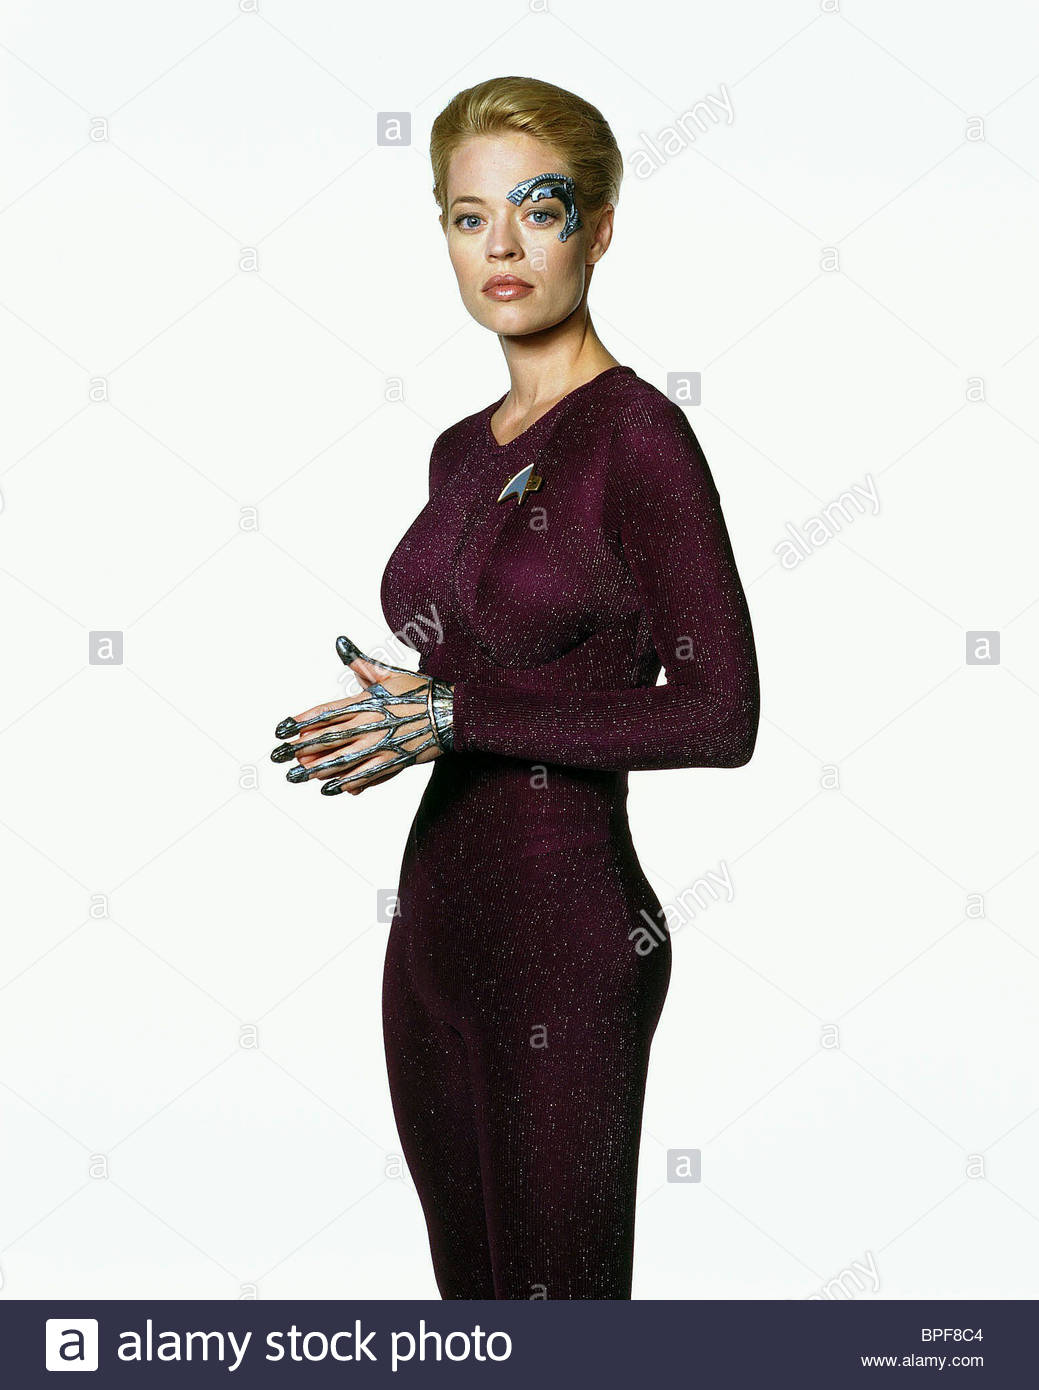 Jeri Ryan Seven Of Nine Star Trek Voyager 1995 Stock Photo Alamy